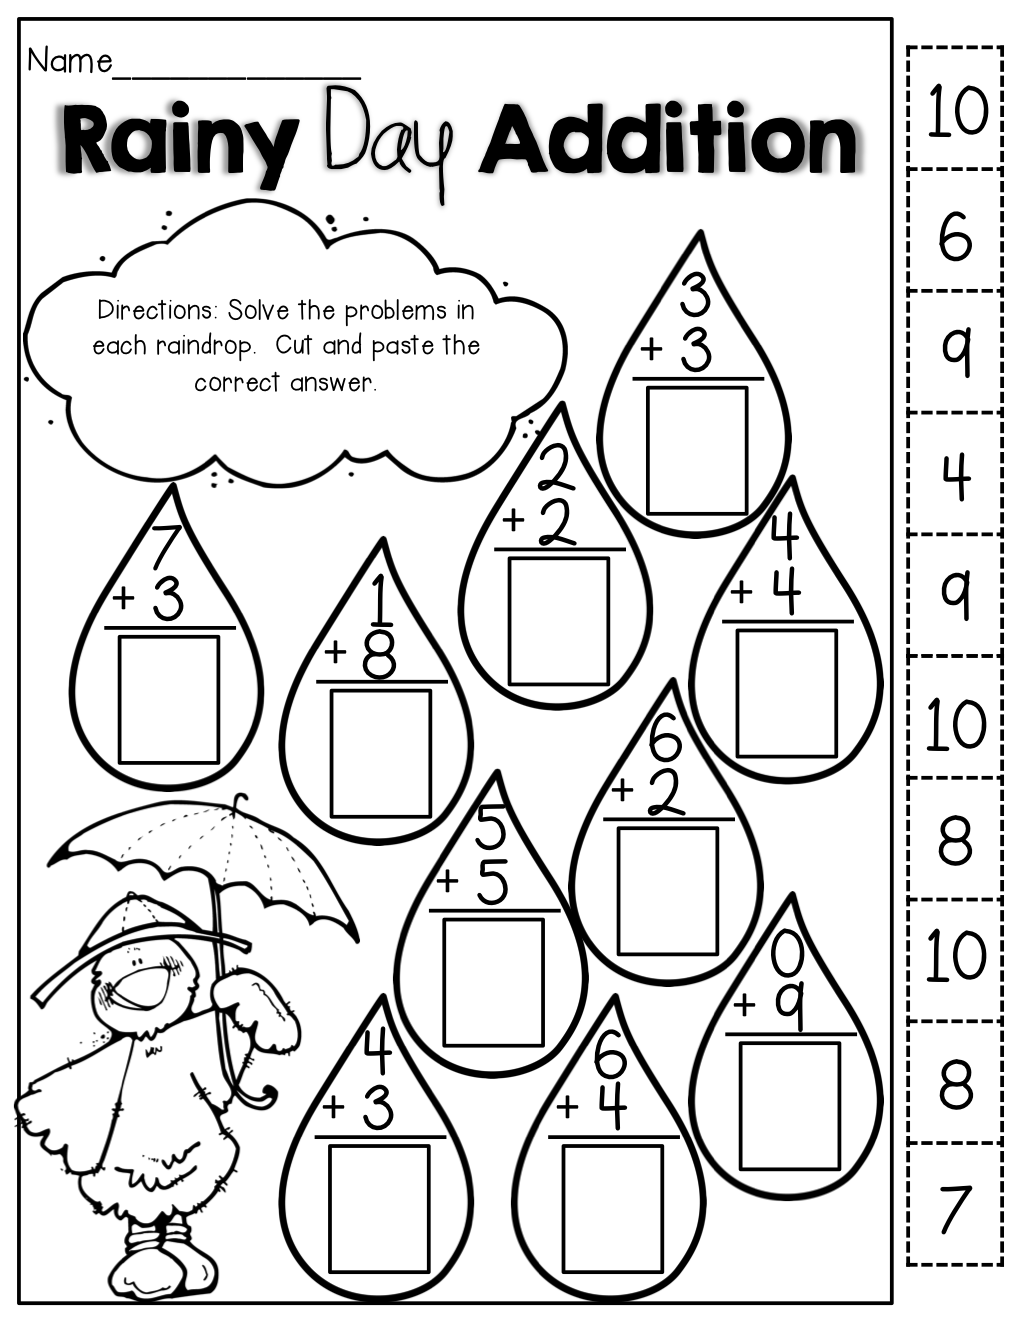 Collection Of Free Cut And Paste Math Worksheets For 2nd Grade